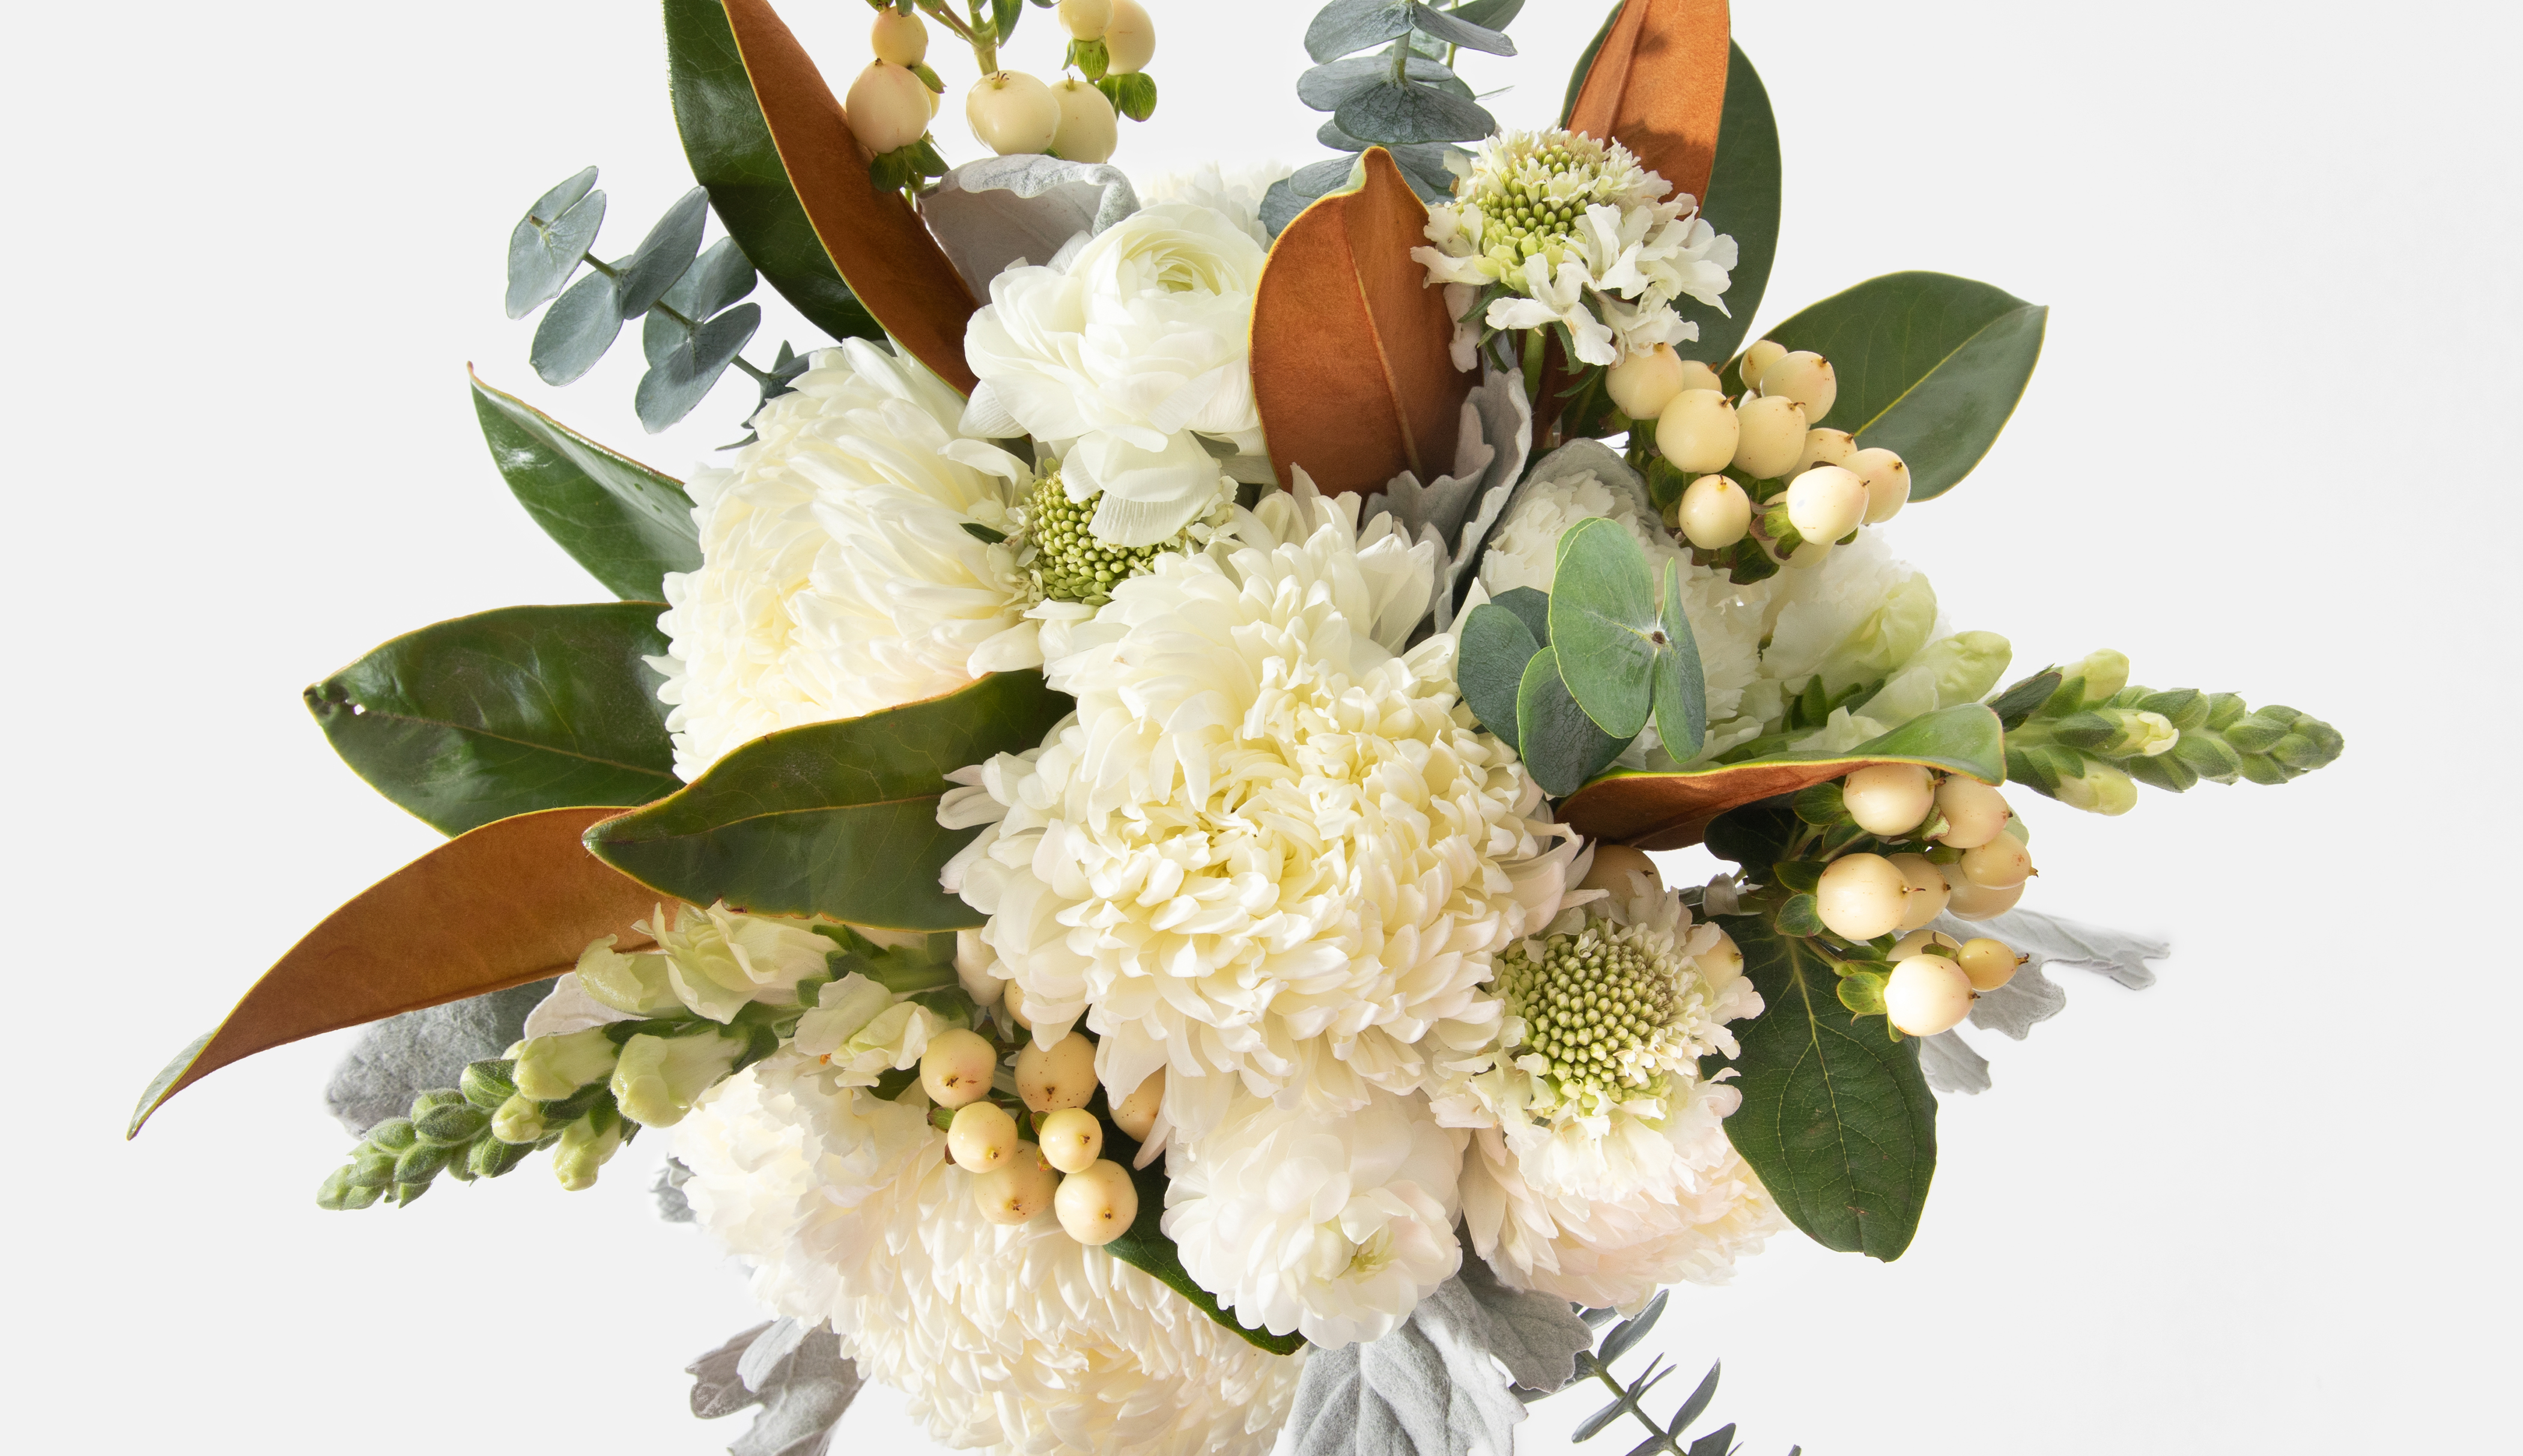 Close up of a floral bouquet containing magnolia leaves